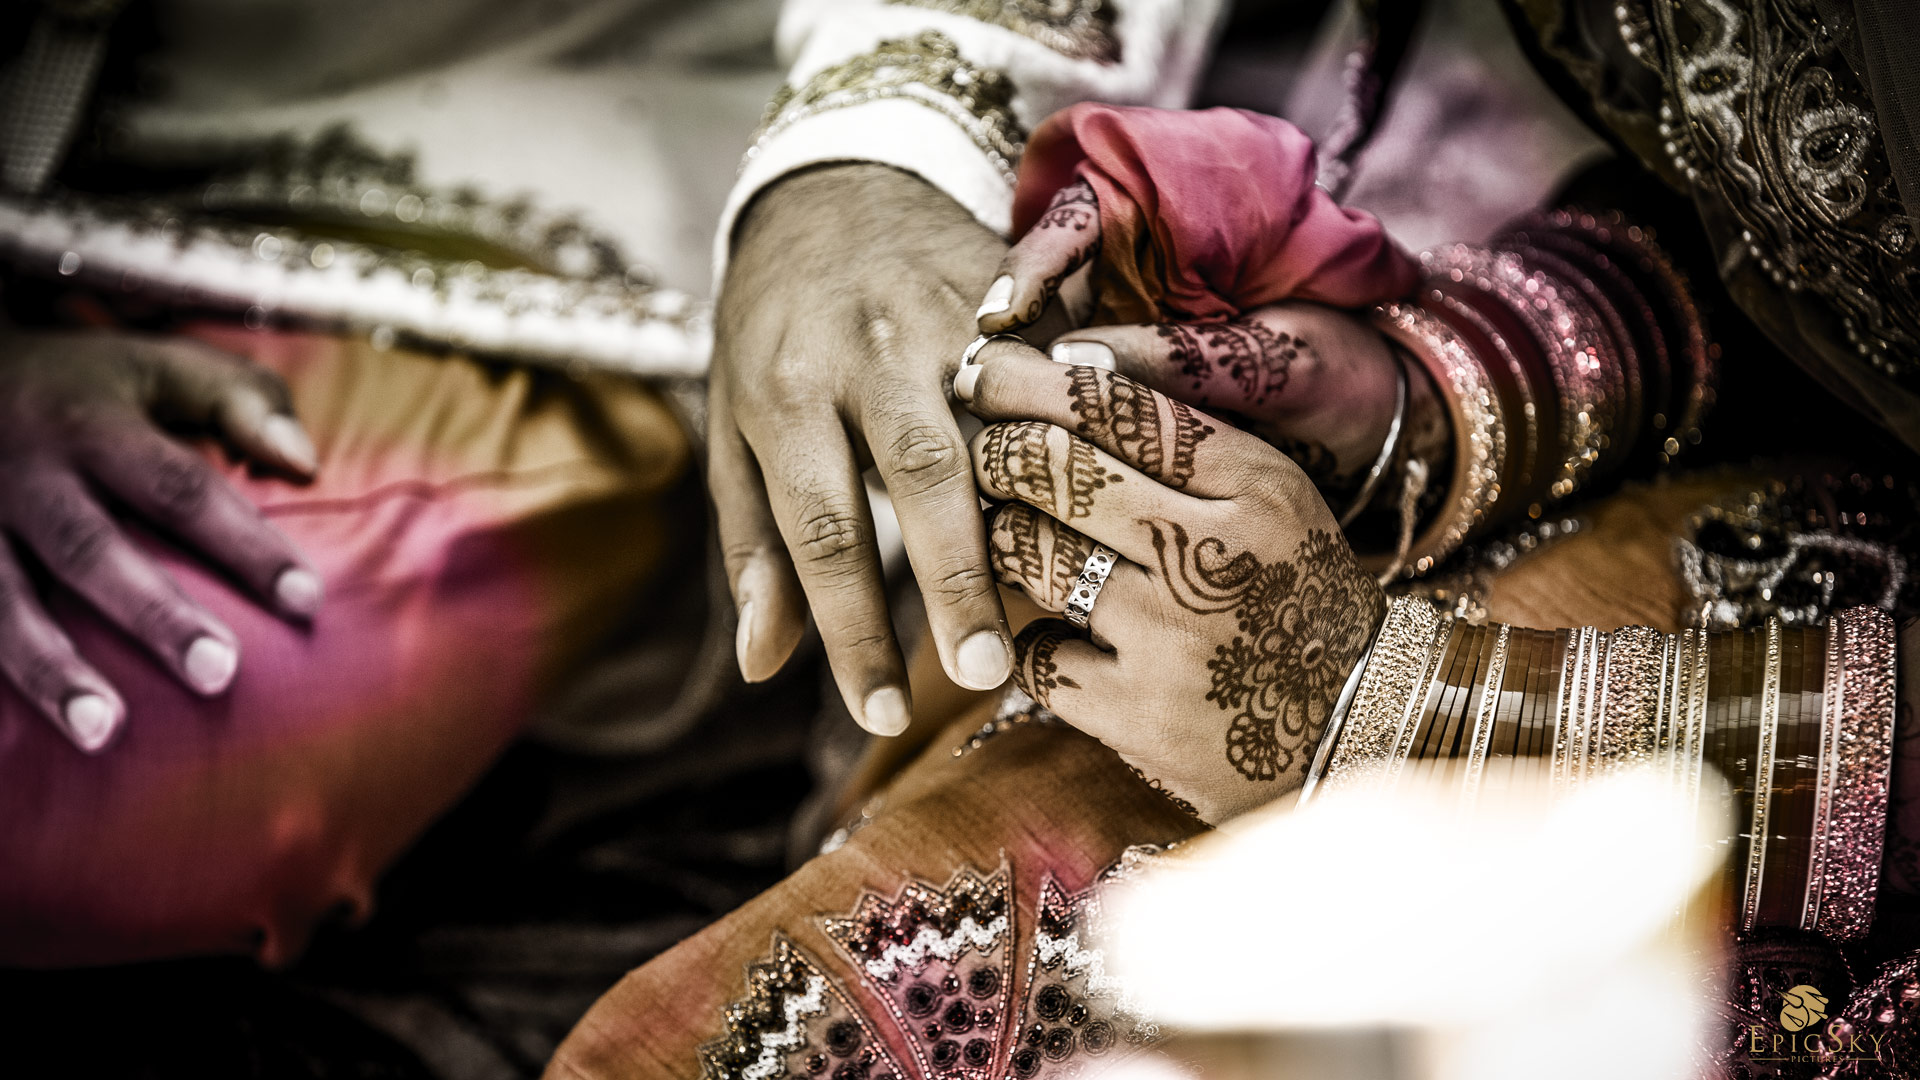 epicskypictures_shoot_photography_wedding_now_married_photoshoot_proposal_brampton_sikh_ceremony_sword_ring_ontario_website